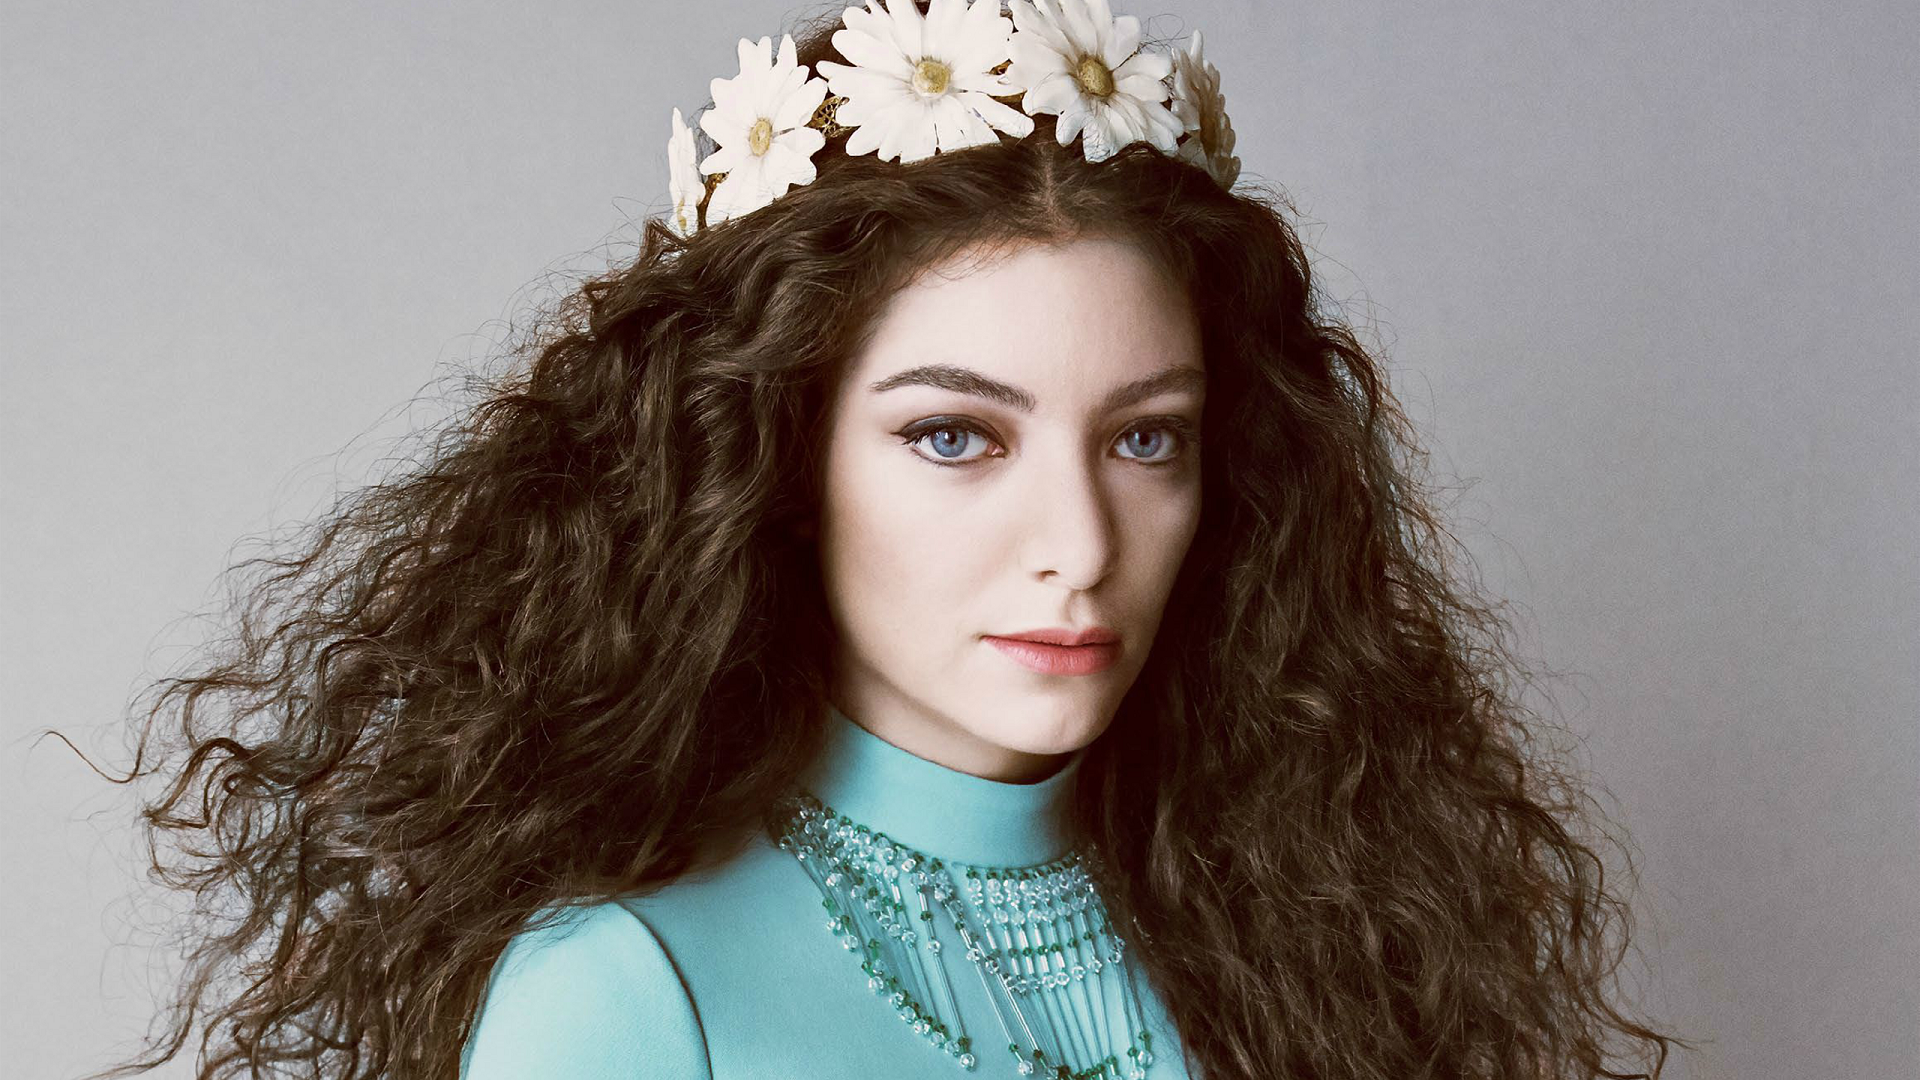 Lorde Wallpapers Backgrounds